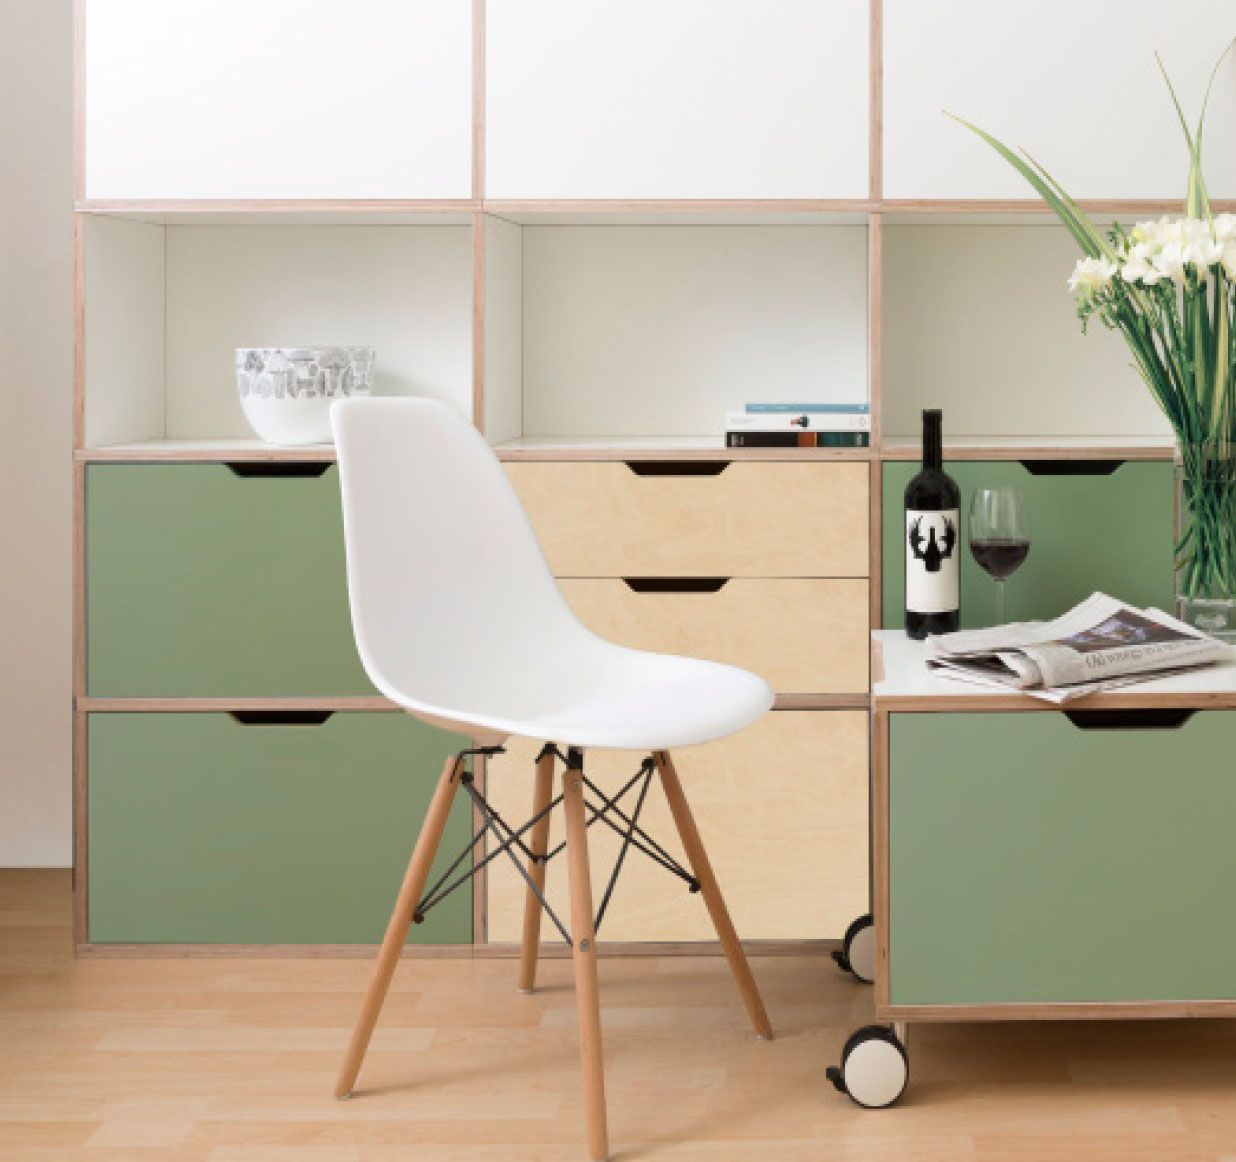 Morfus Uk Contemporary Home And Office Modular Furniture 이미지 포함